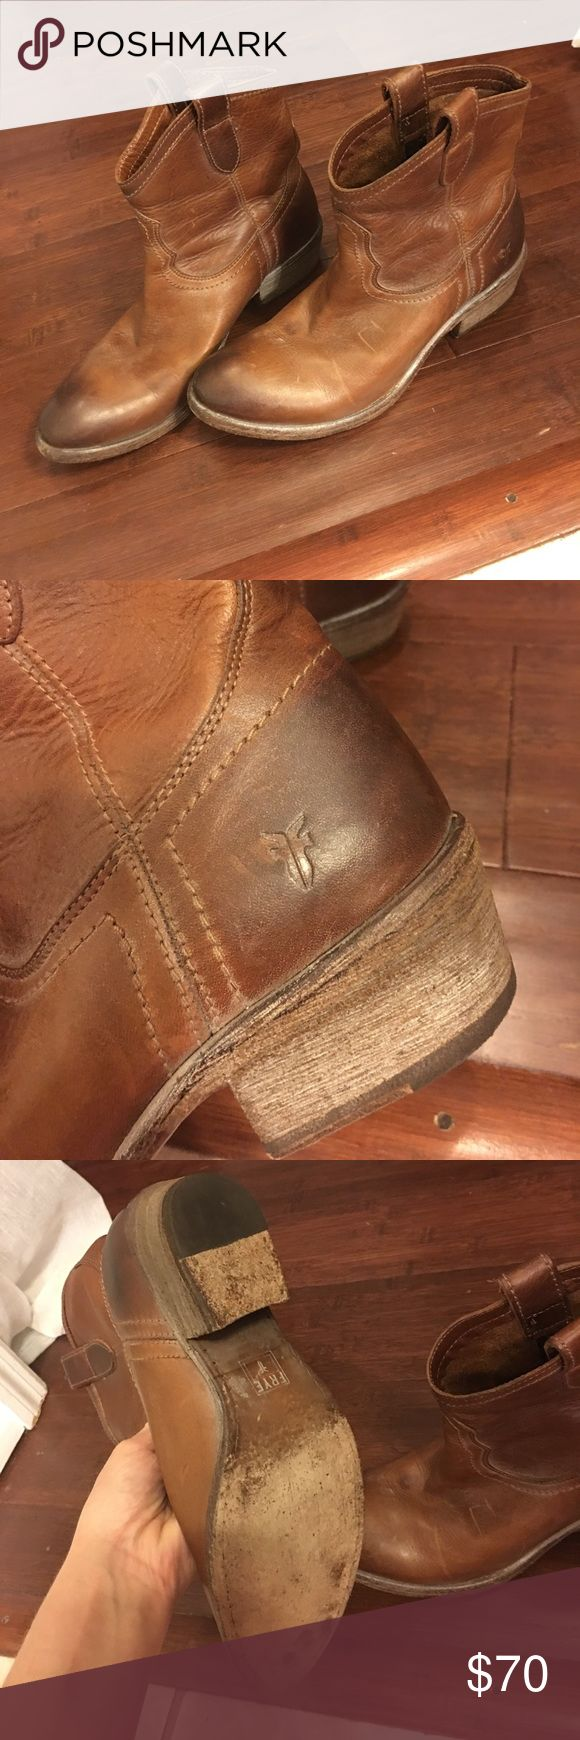 Gently used fry boots Gently used fry boots had gentle used marks which is typical for this distressed look Frye Shoes Ankle Boots & Booties